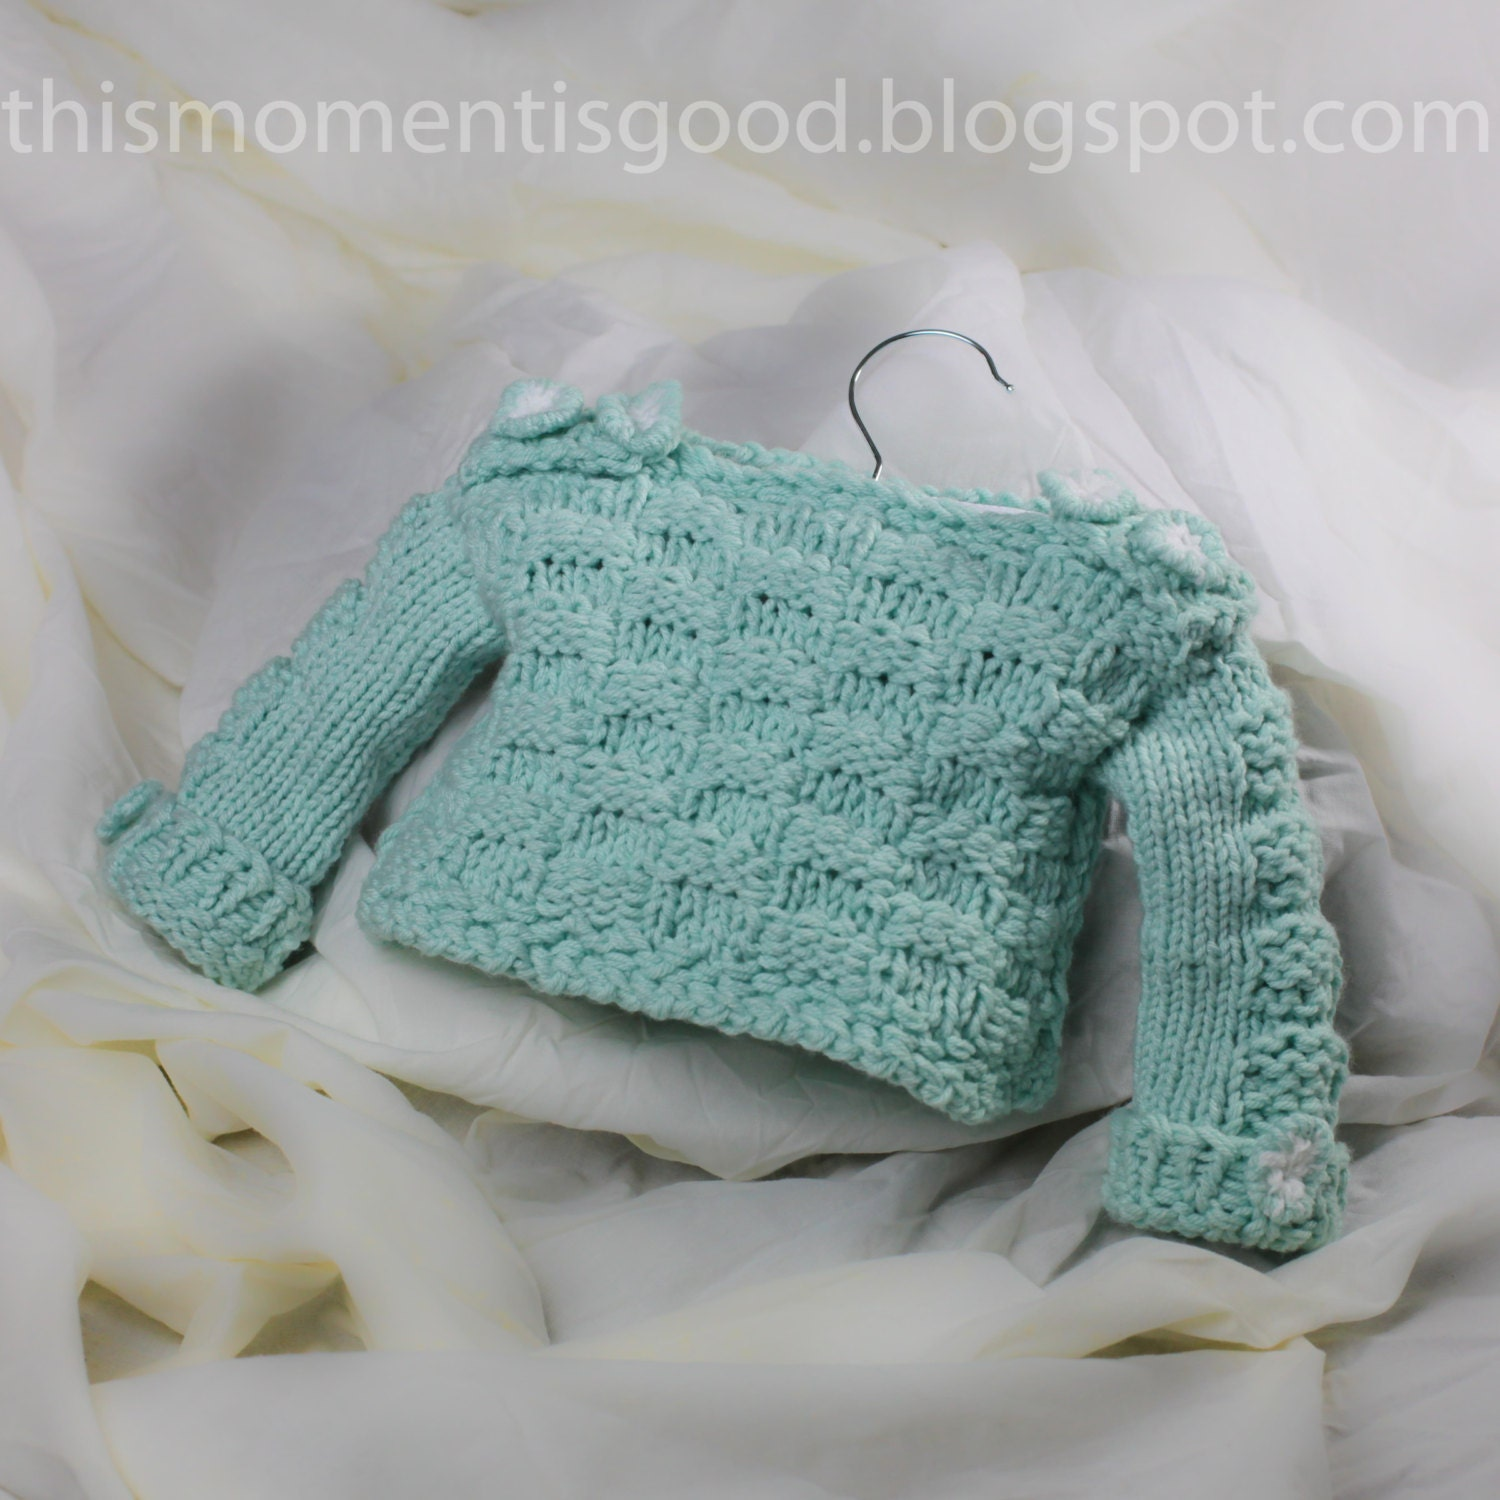 Loom Knit Baby Sweater Pattern: Checkerboard Pattern on